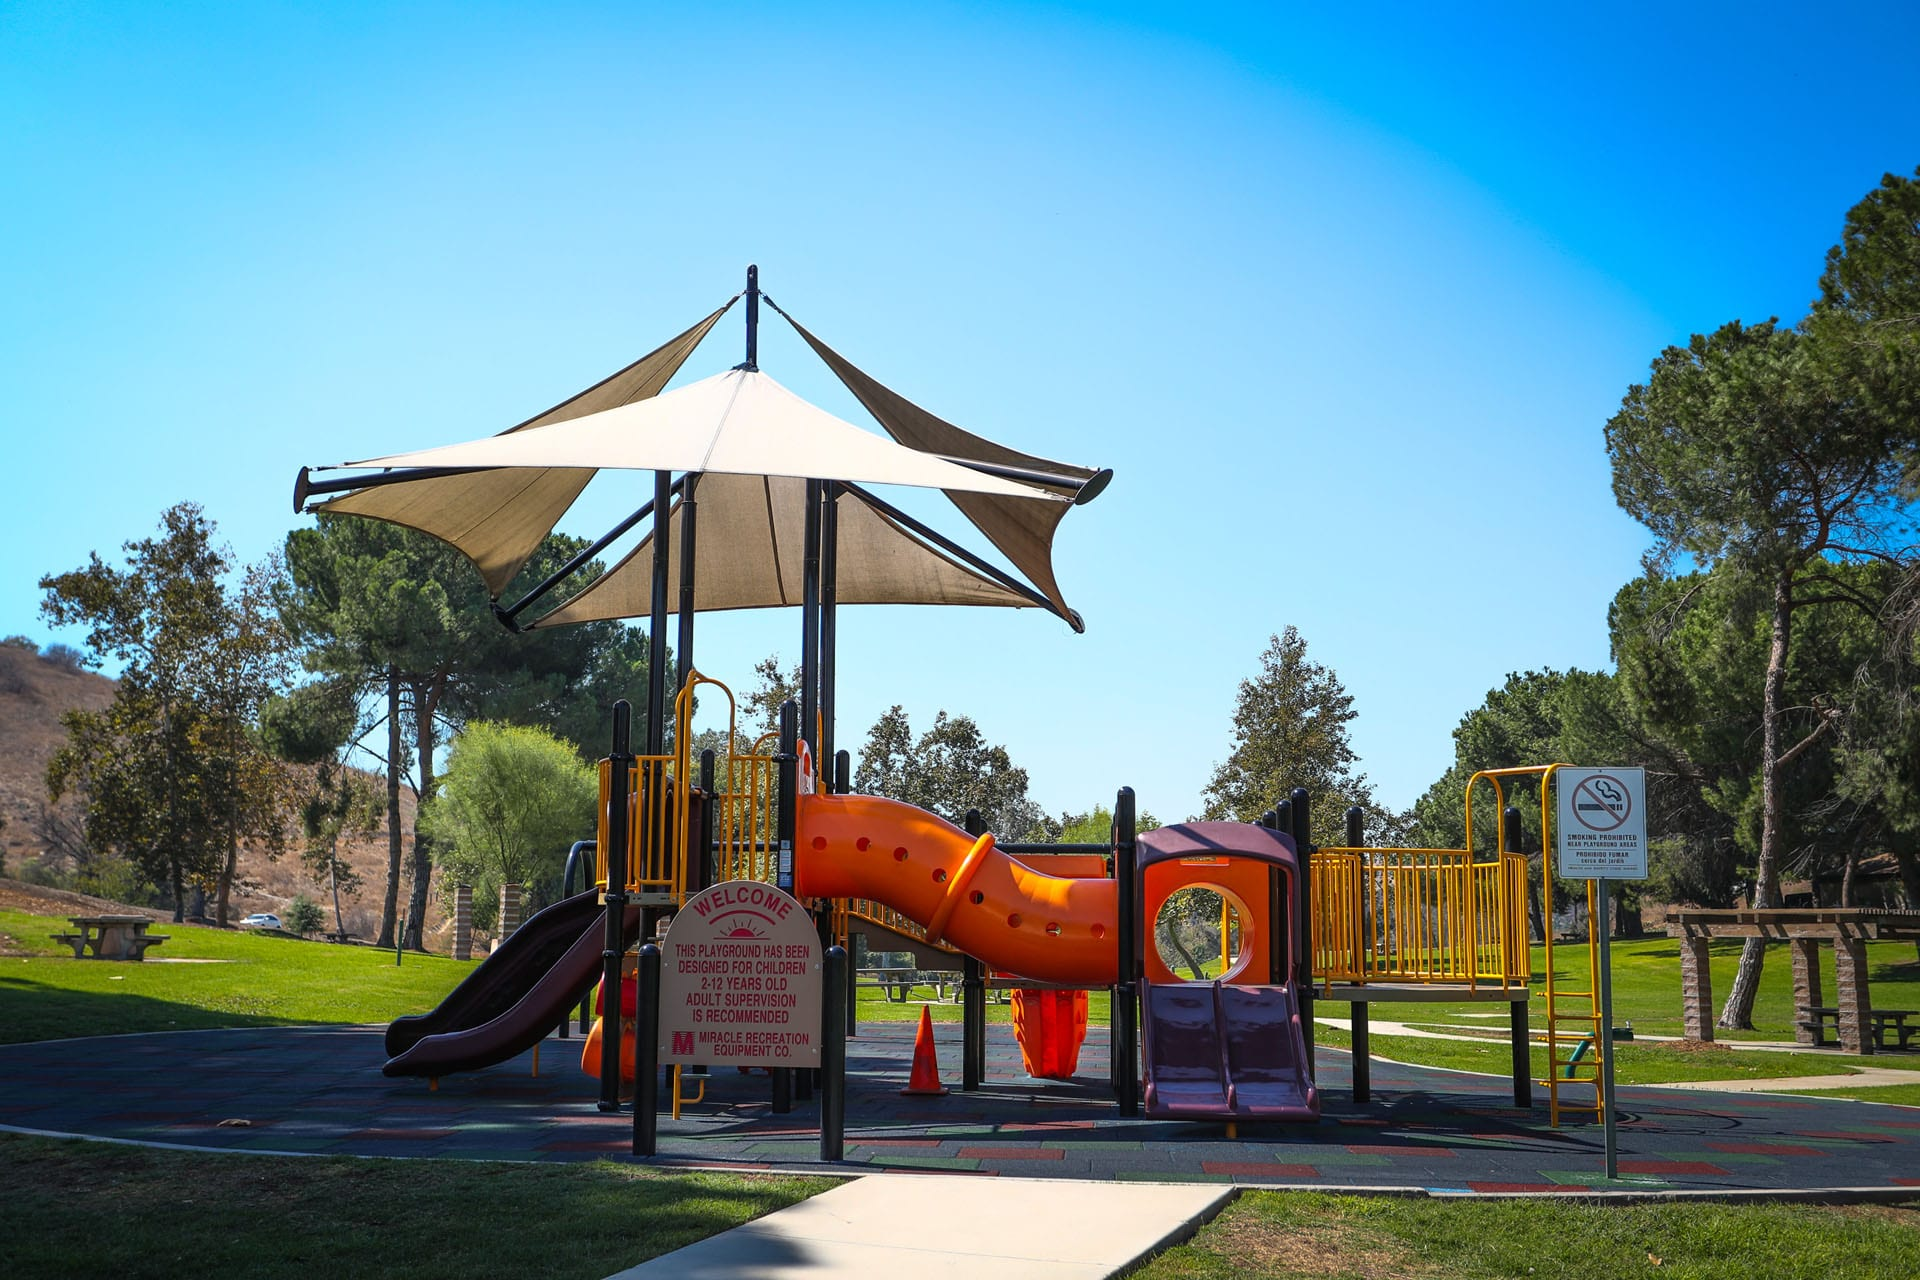 Playground showing the side with the Welcome sign